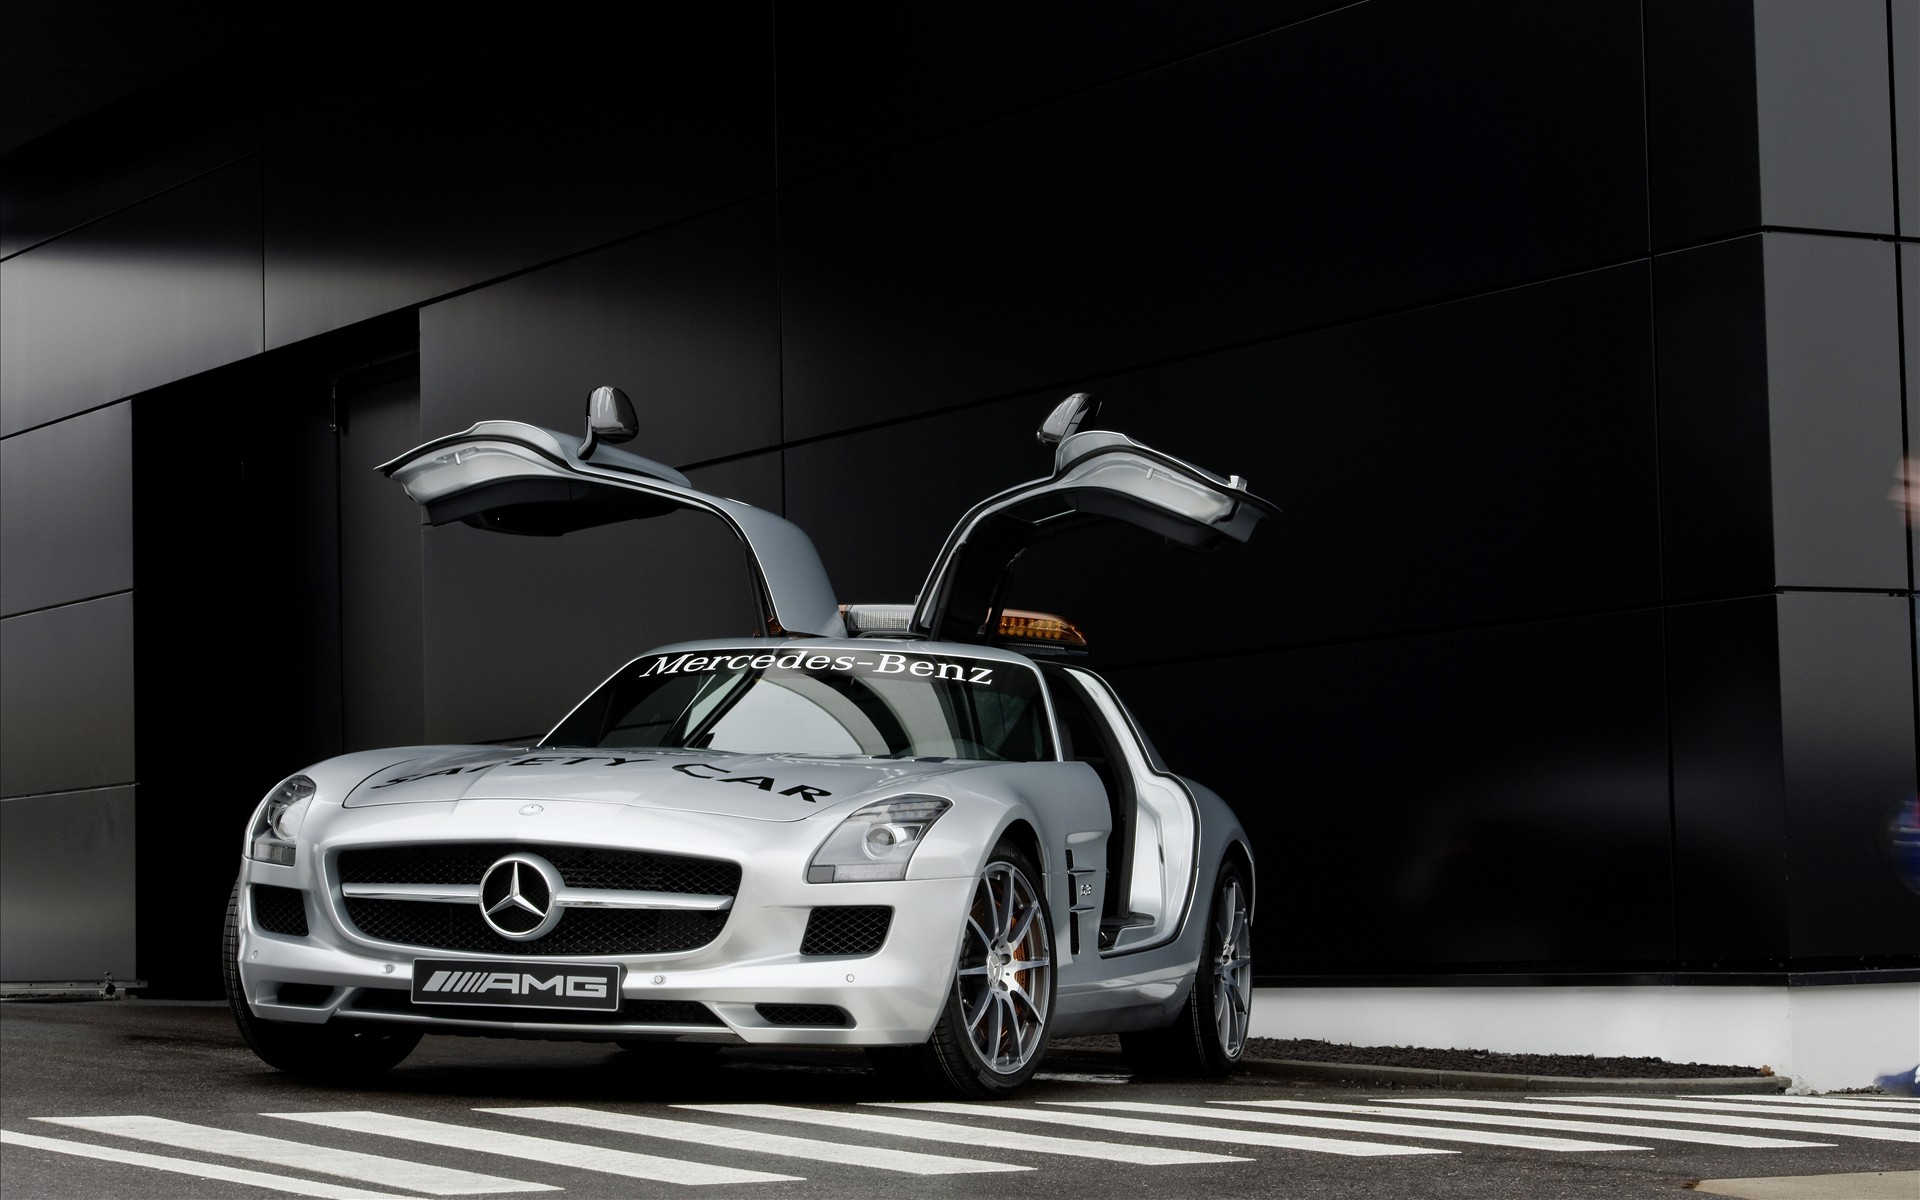 mercedes benz sls amg f1 safety car 2010 车 高清图片